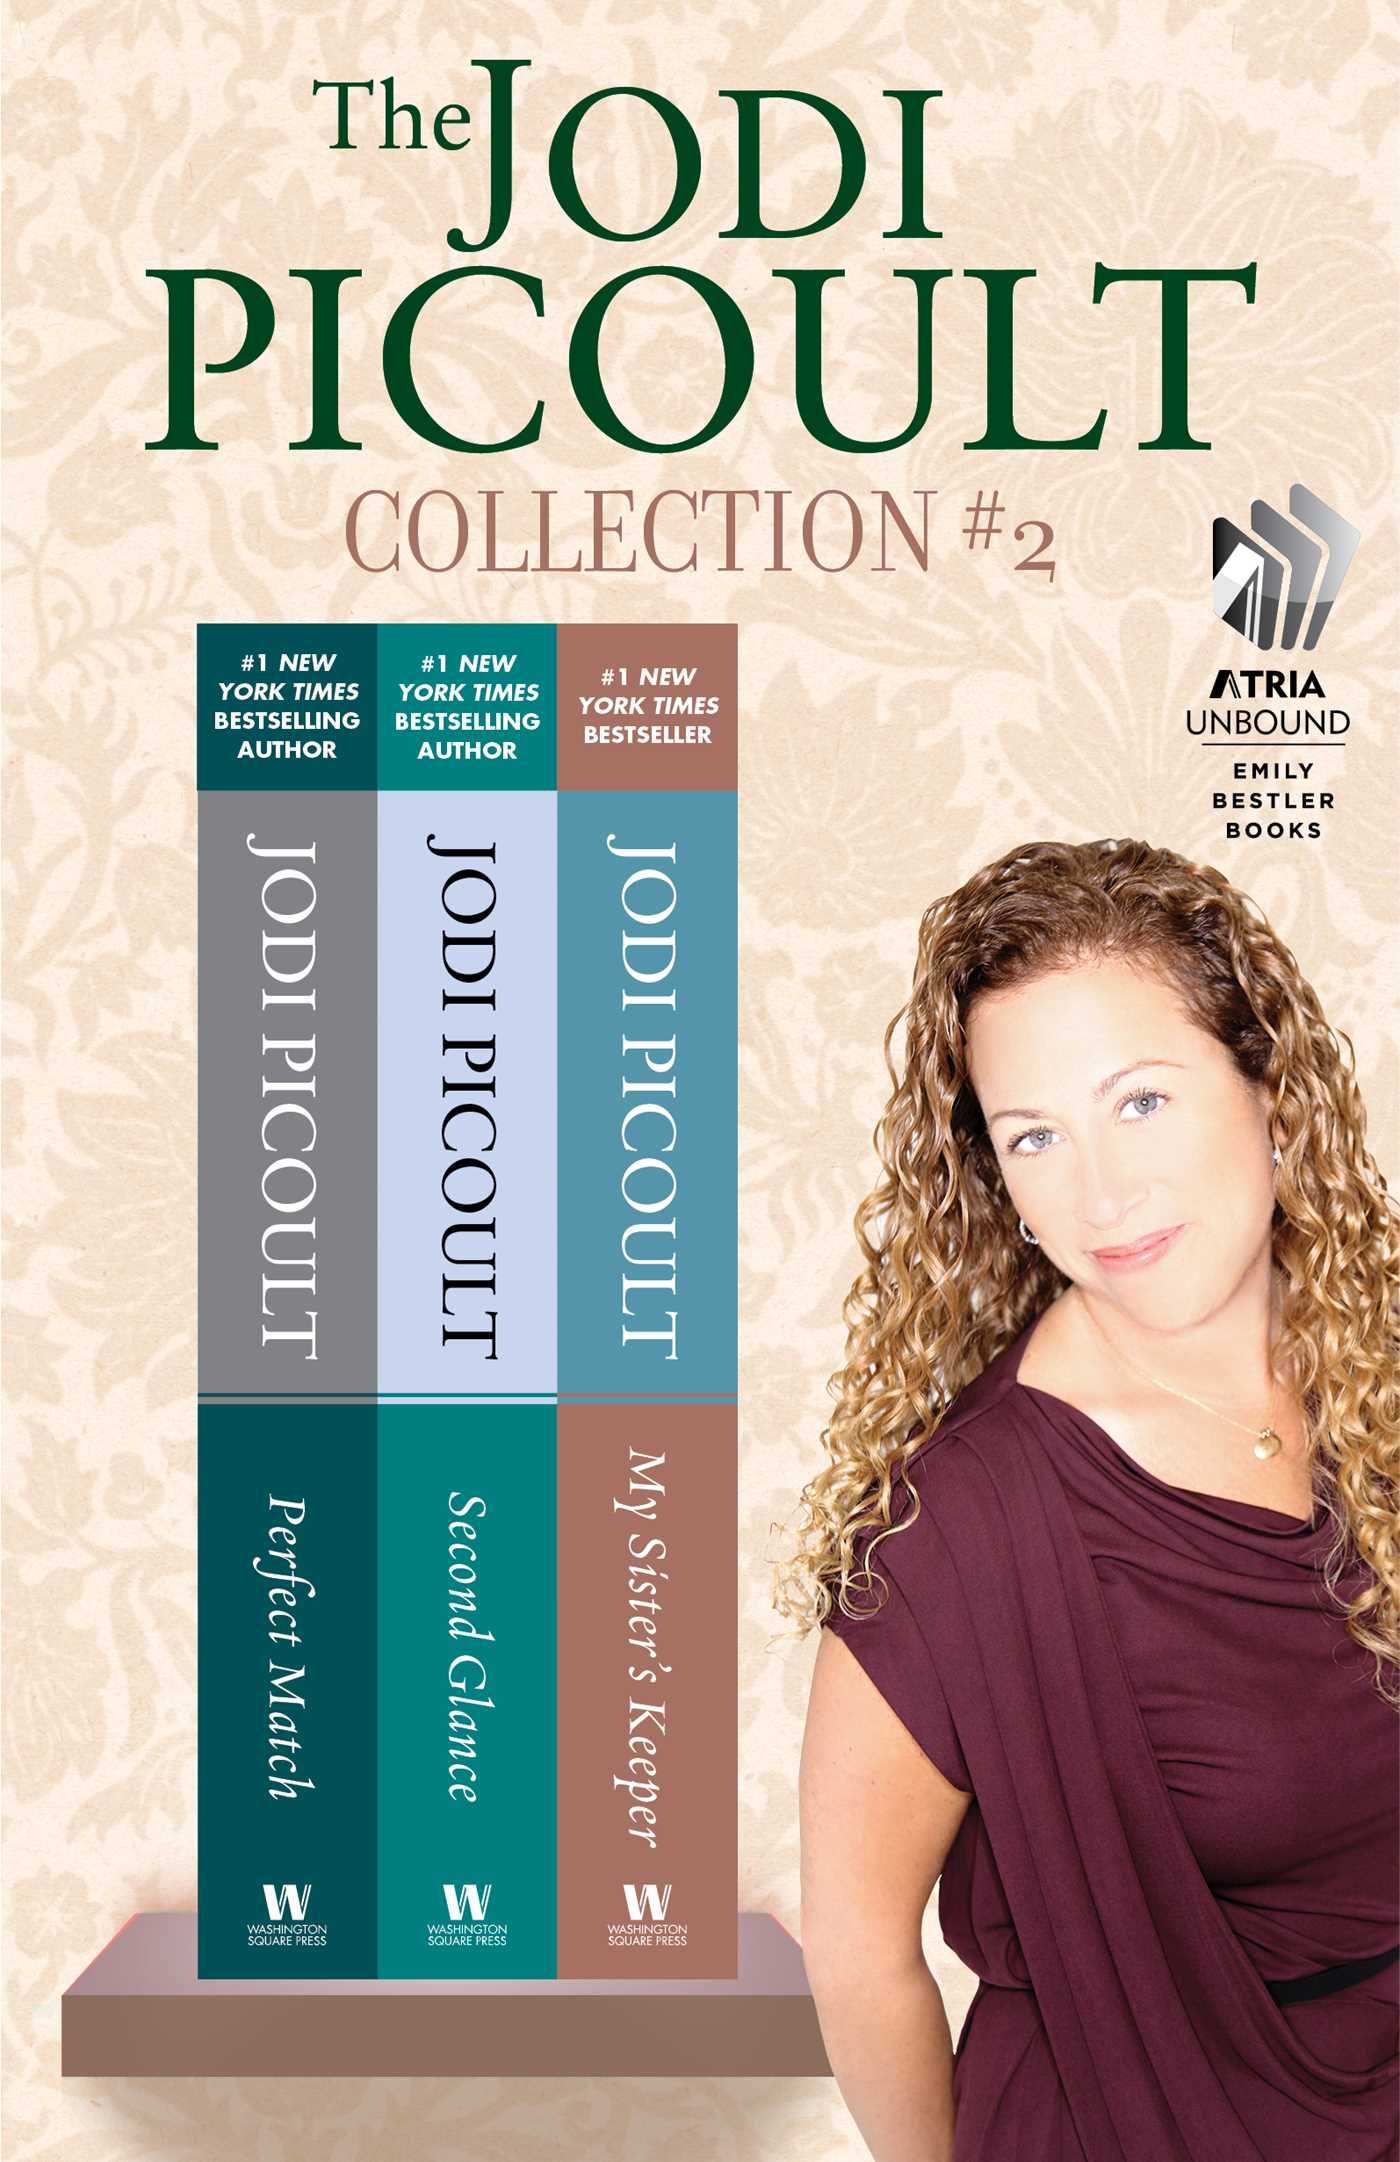 Jodi-picoult-collection-2-9781476703879_hr